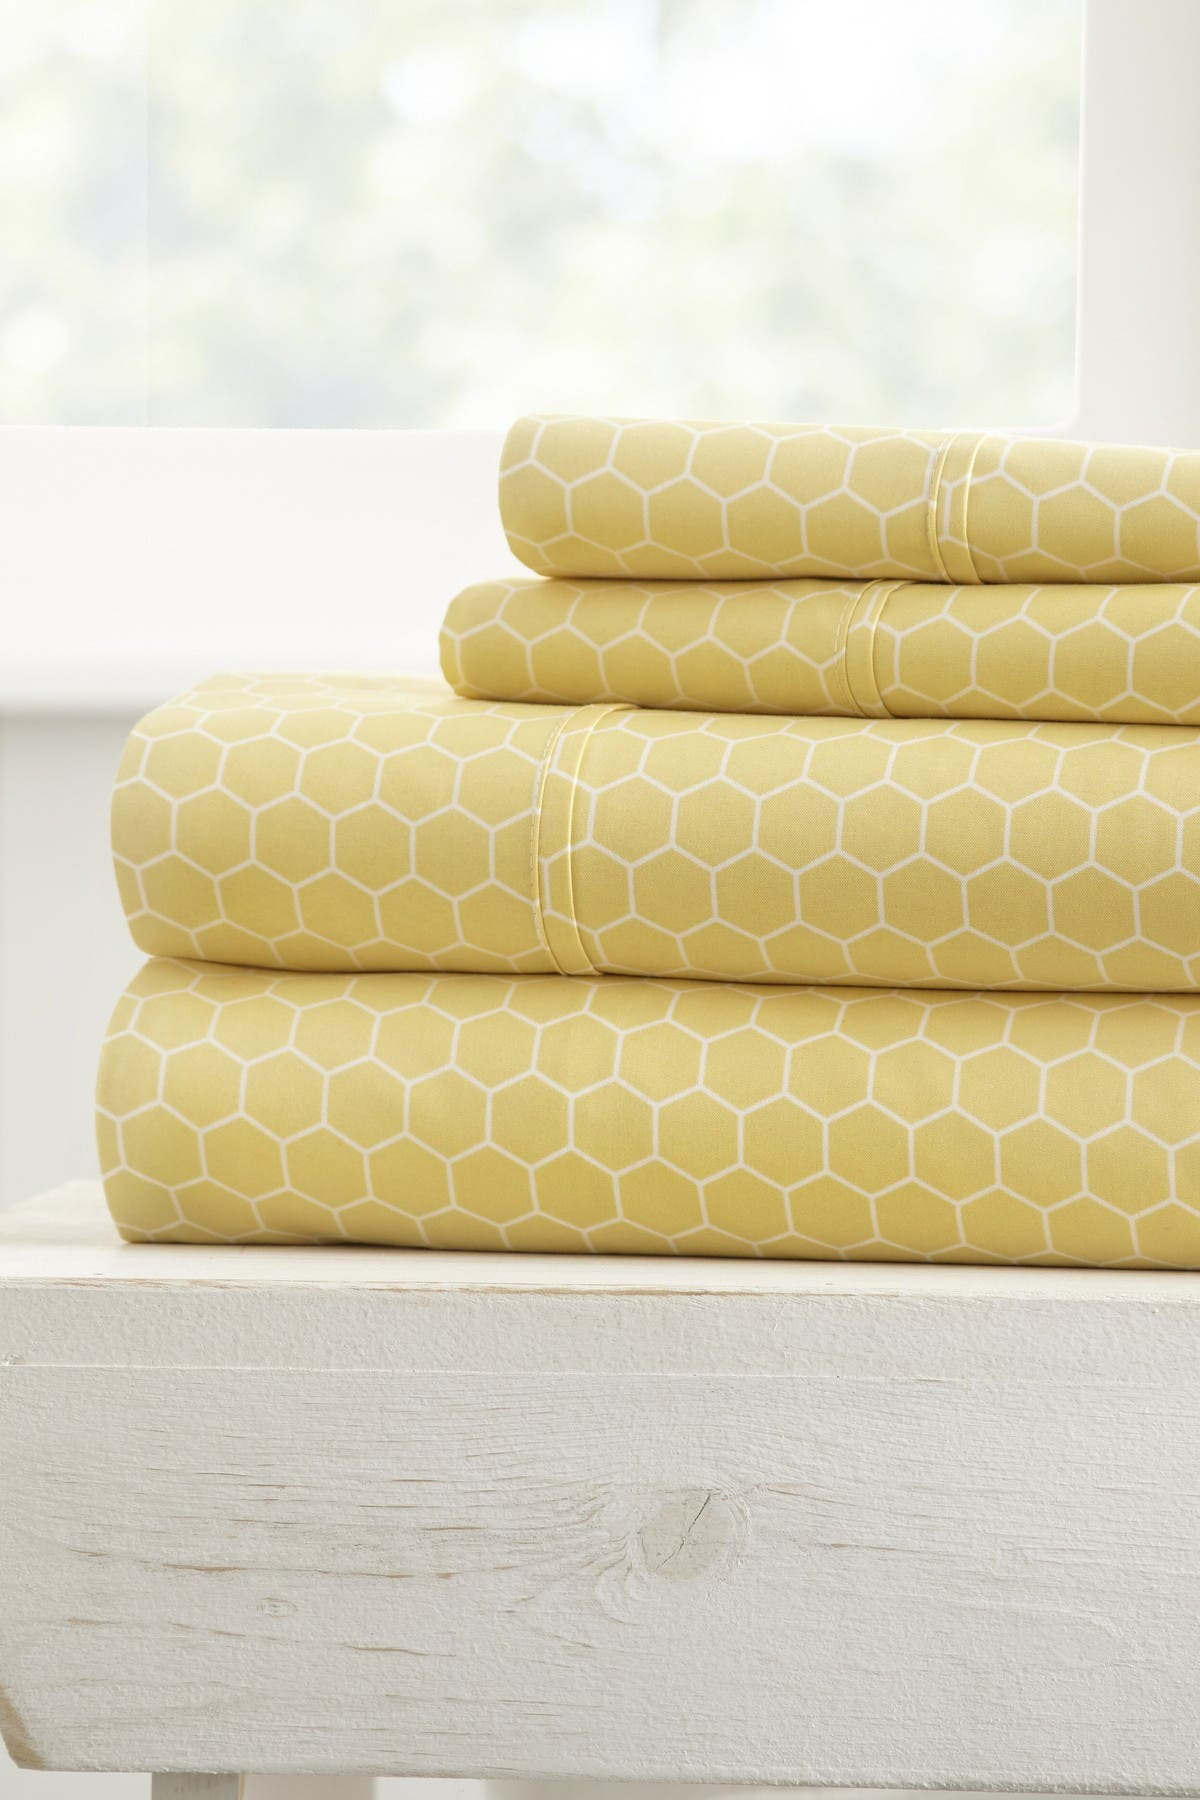 Image of IENJOY HOME The Home Spun Ultra Soft Honeycomb Pattern 4-Piece Queen Bed Sheet Set - Yellow